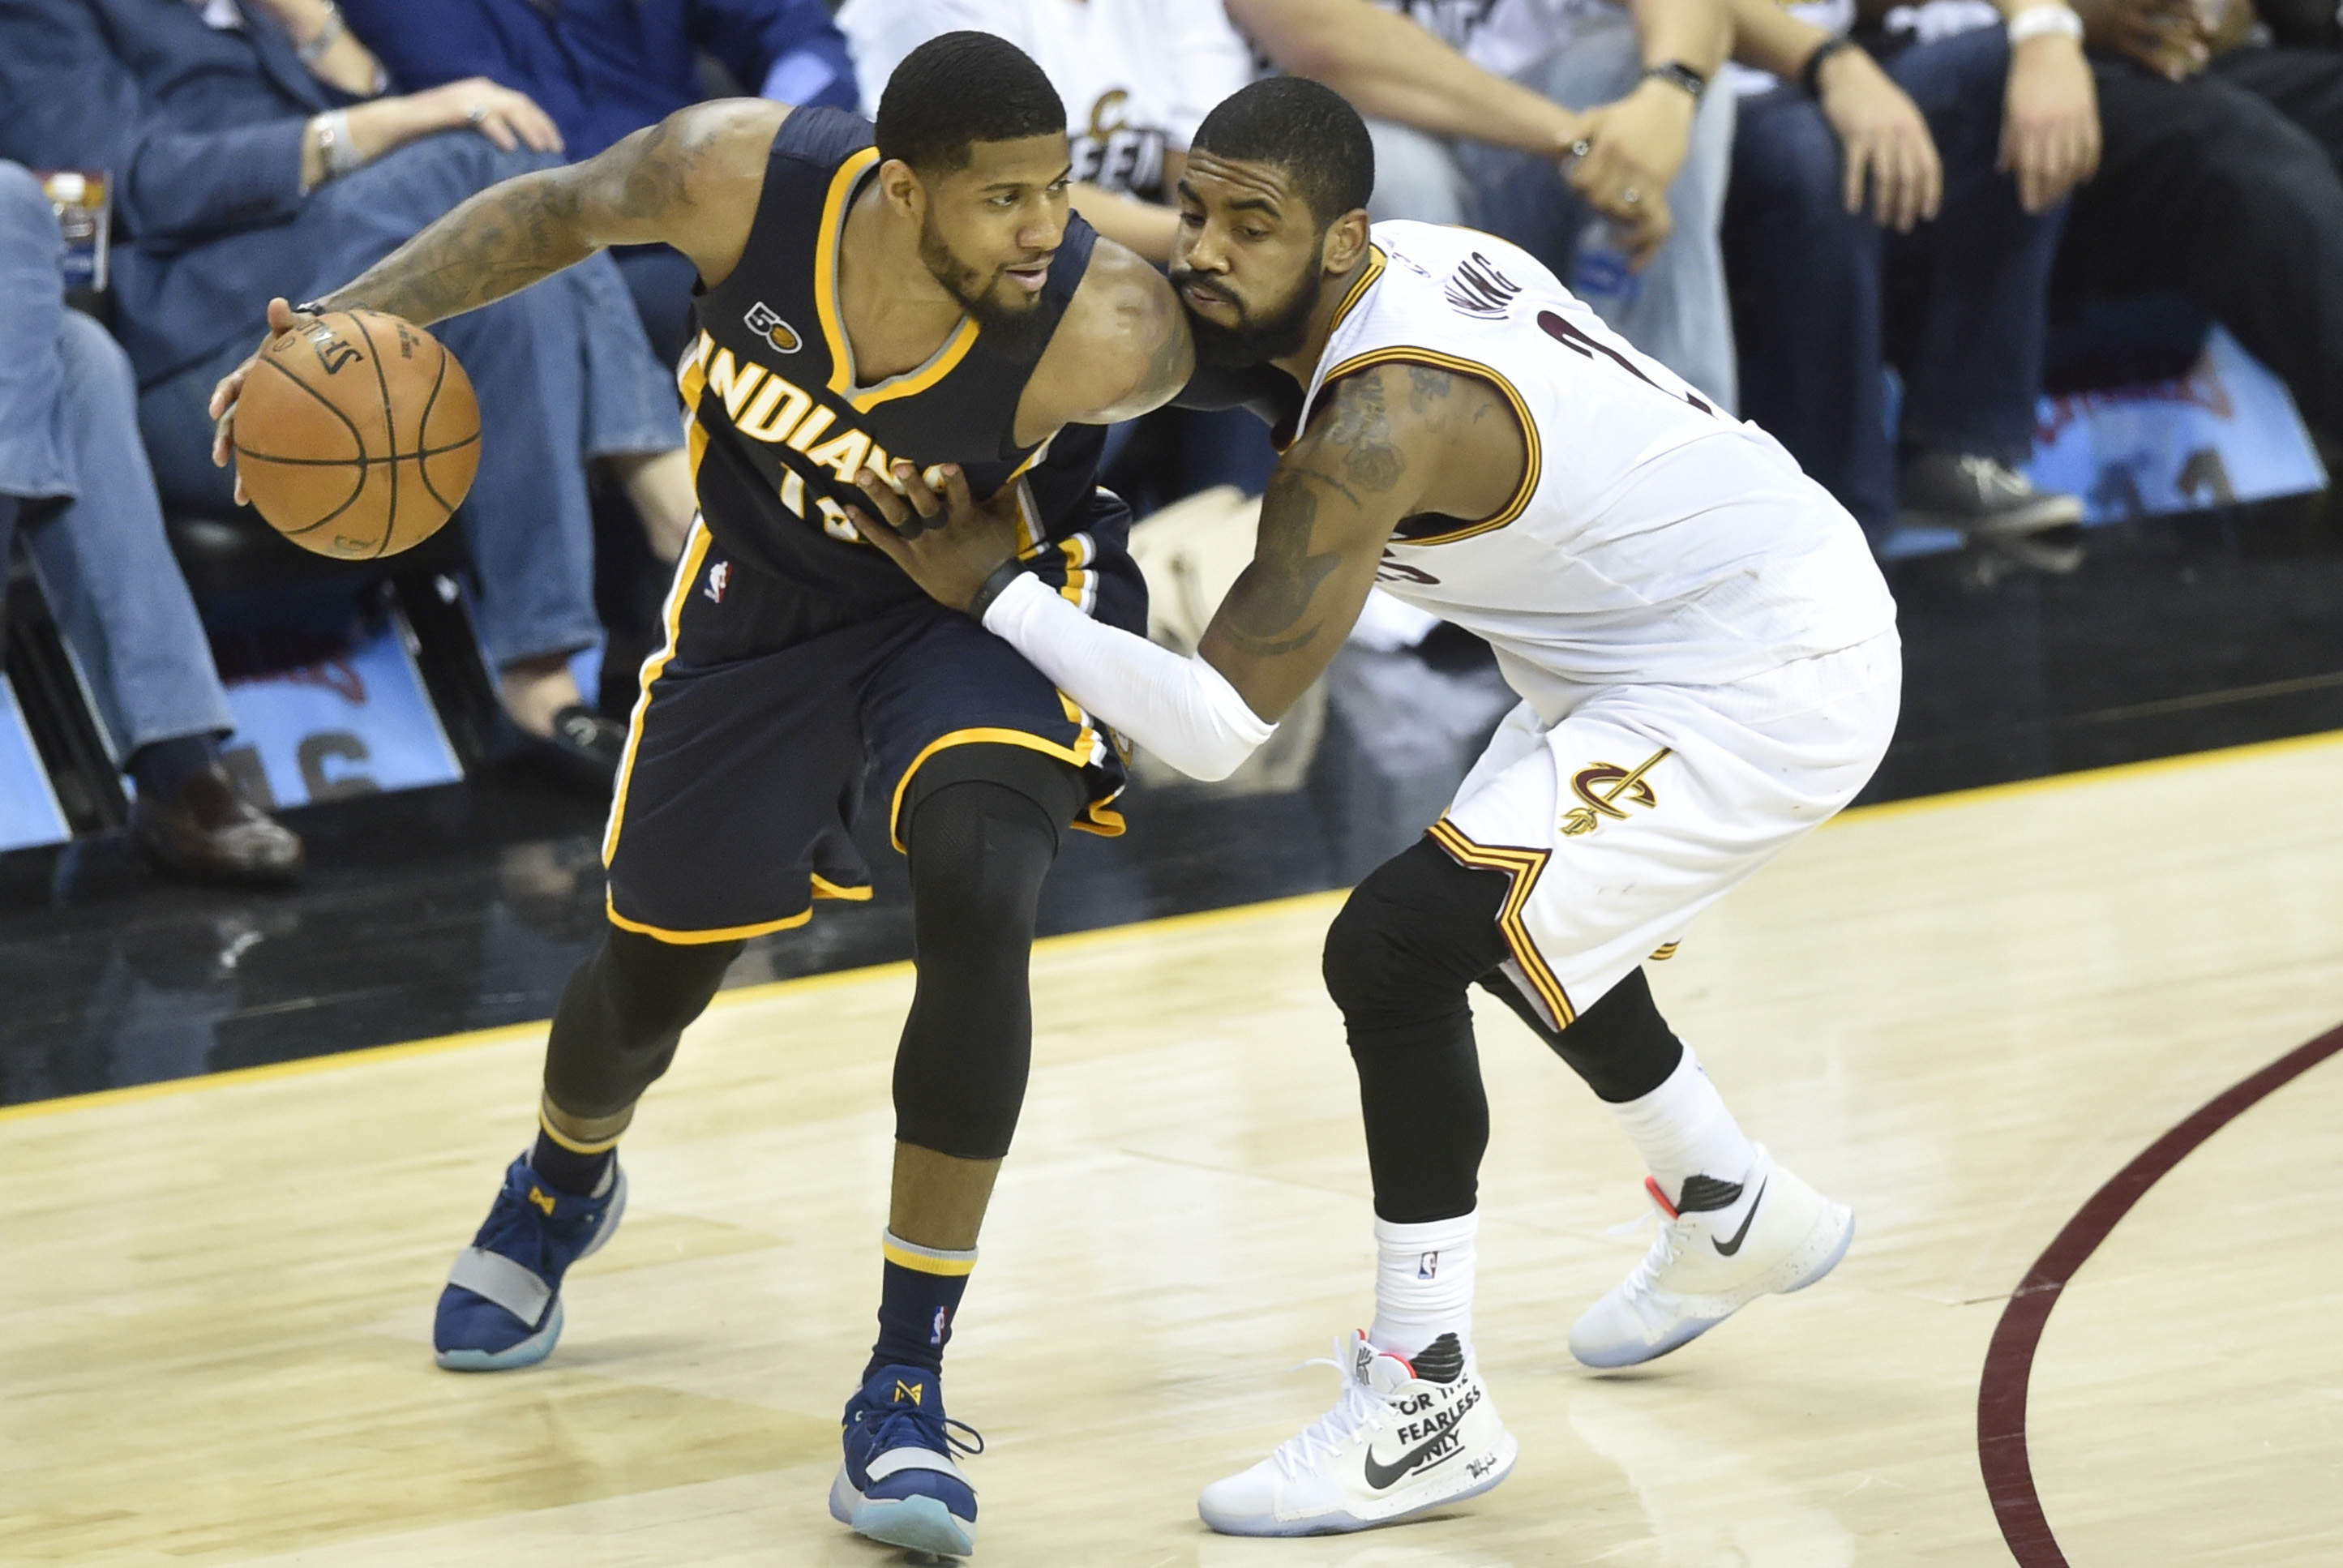 10014256-nba-playoffs-indiana-pacers-at-cleveland-cavaliers-4